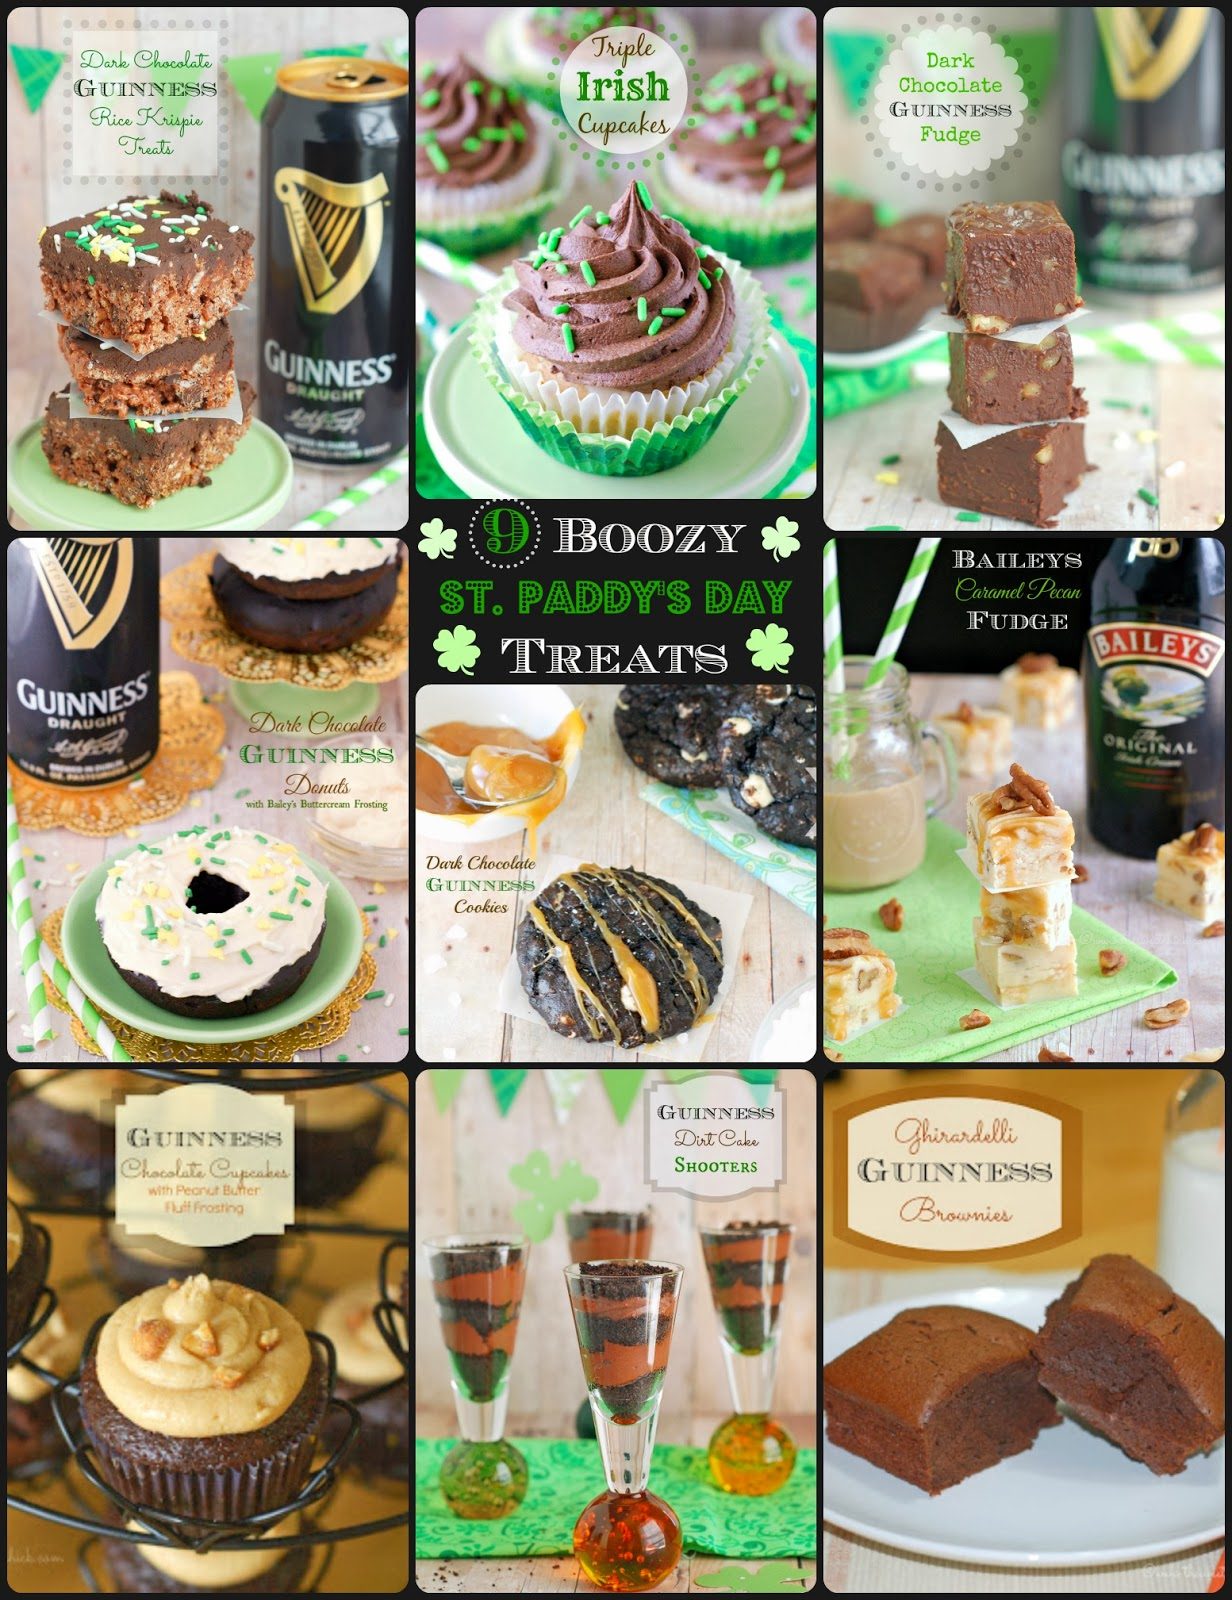 9 Boozy St. Paddy's Day Treats by The Sweet Chick